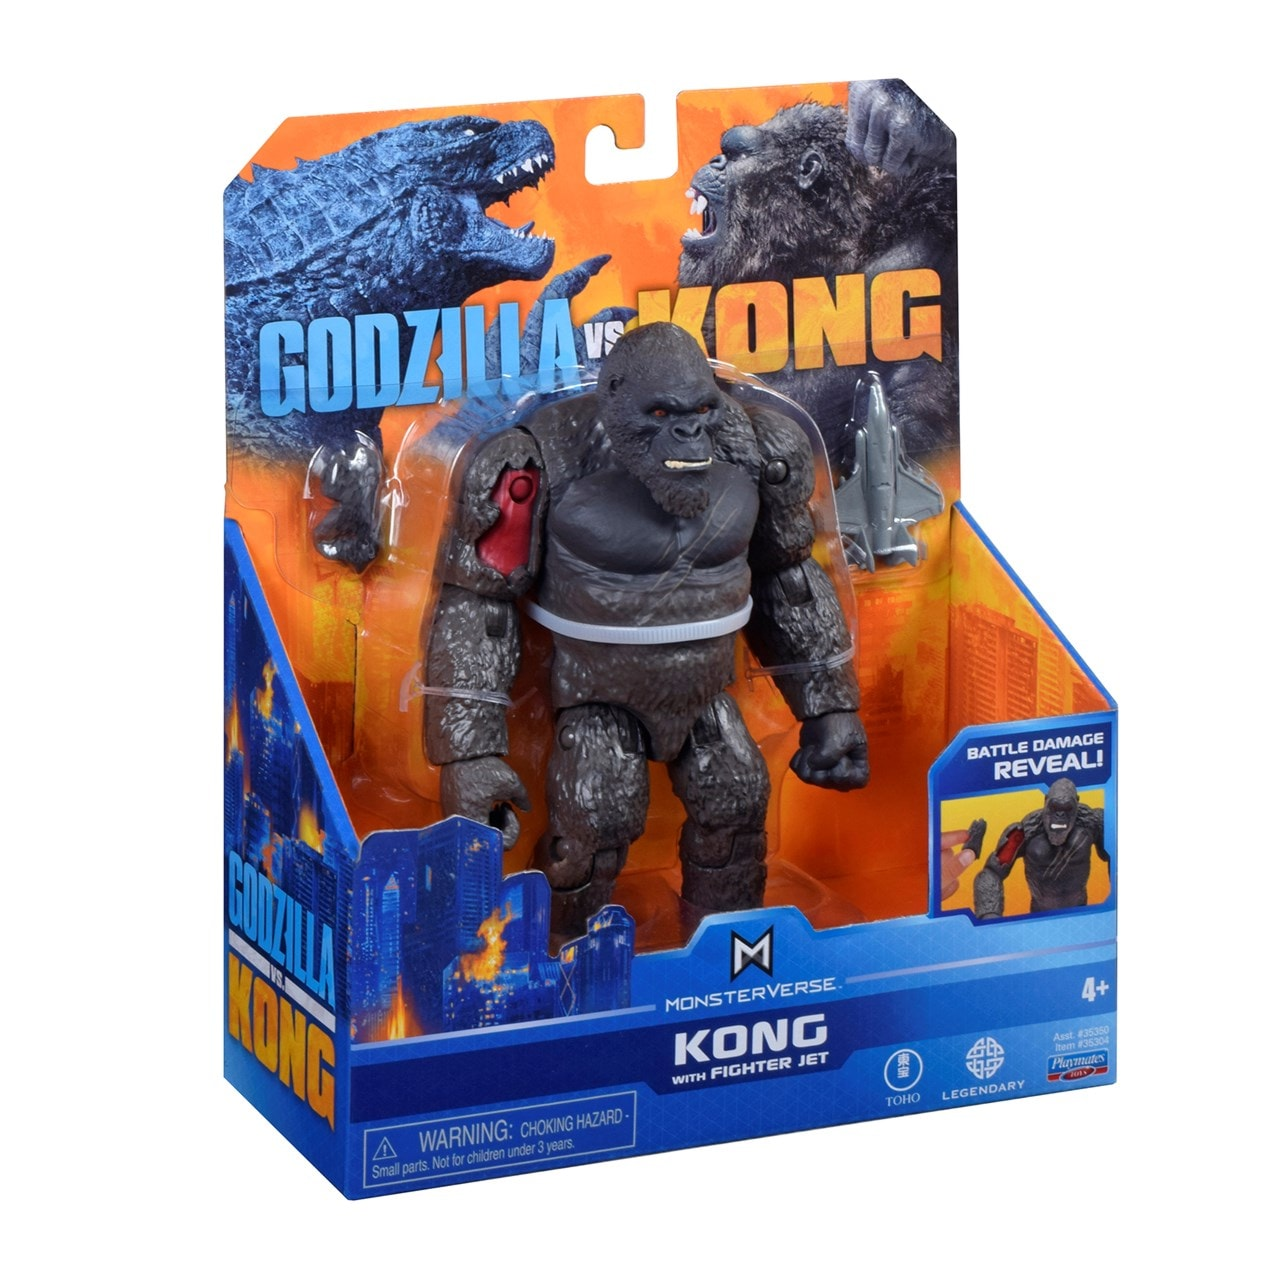 Monsterverse Godzilla vs Kong: Hollow Earth Kong with Fighter Jet Action Figure - 4